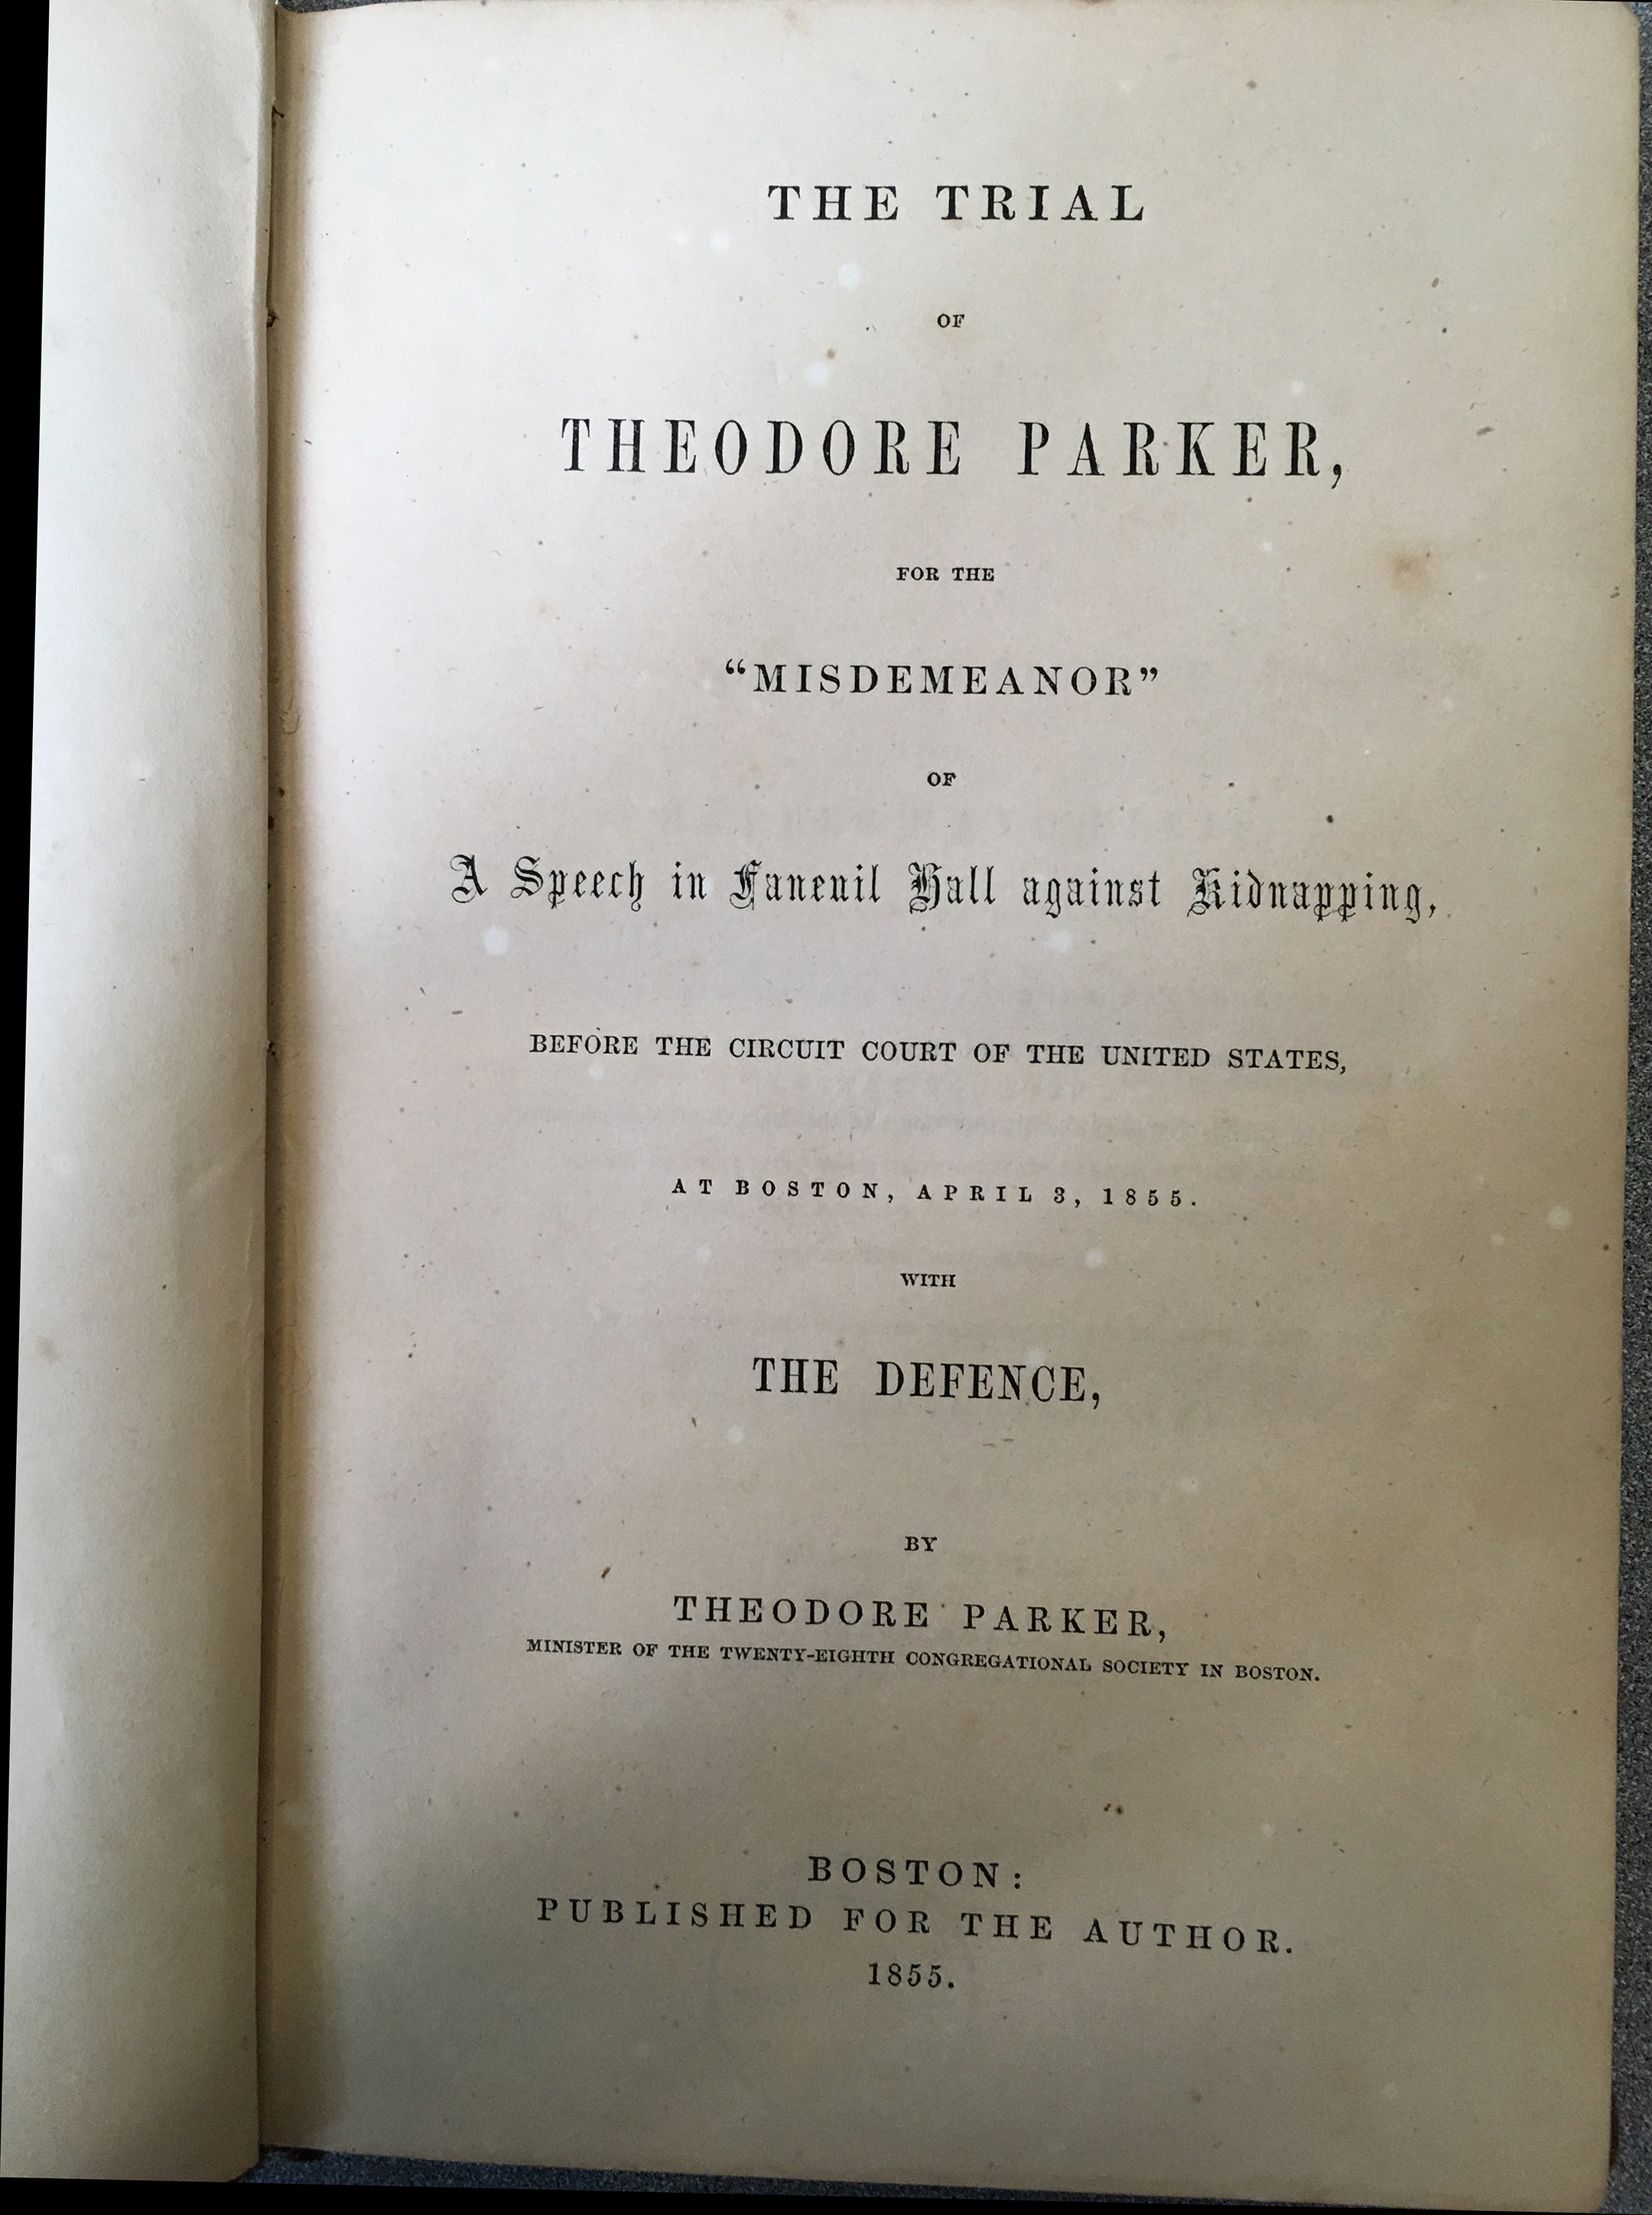 """The trial of Theodore Parker : for the """"misdemeanor"""" of a speech in Faneuil Hall against kidnapping, before the Circuit Court of the United States, at Boston, April 3, 1855 / with the defence by Theodore Parker."""